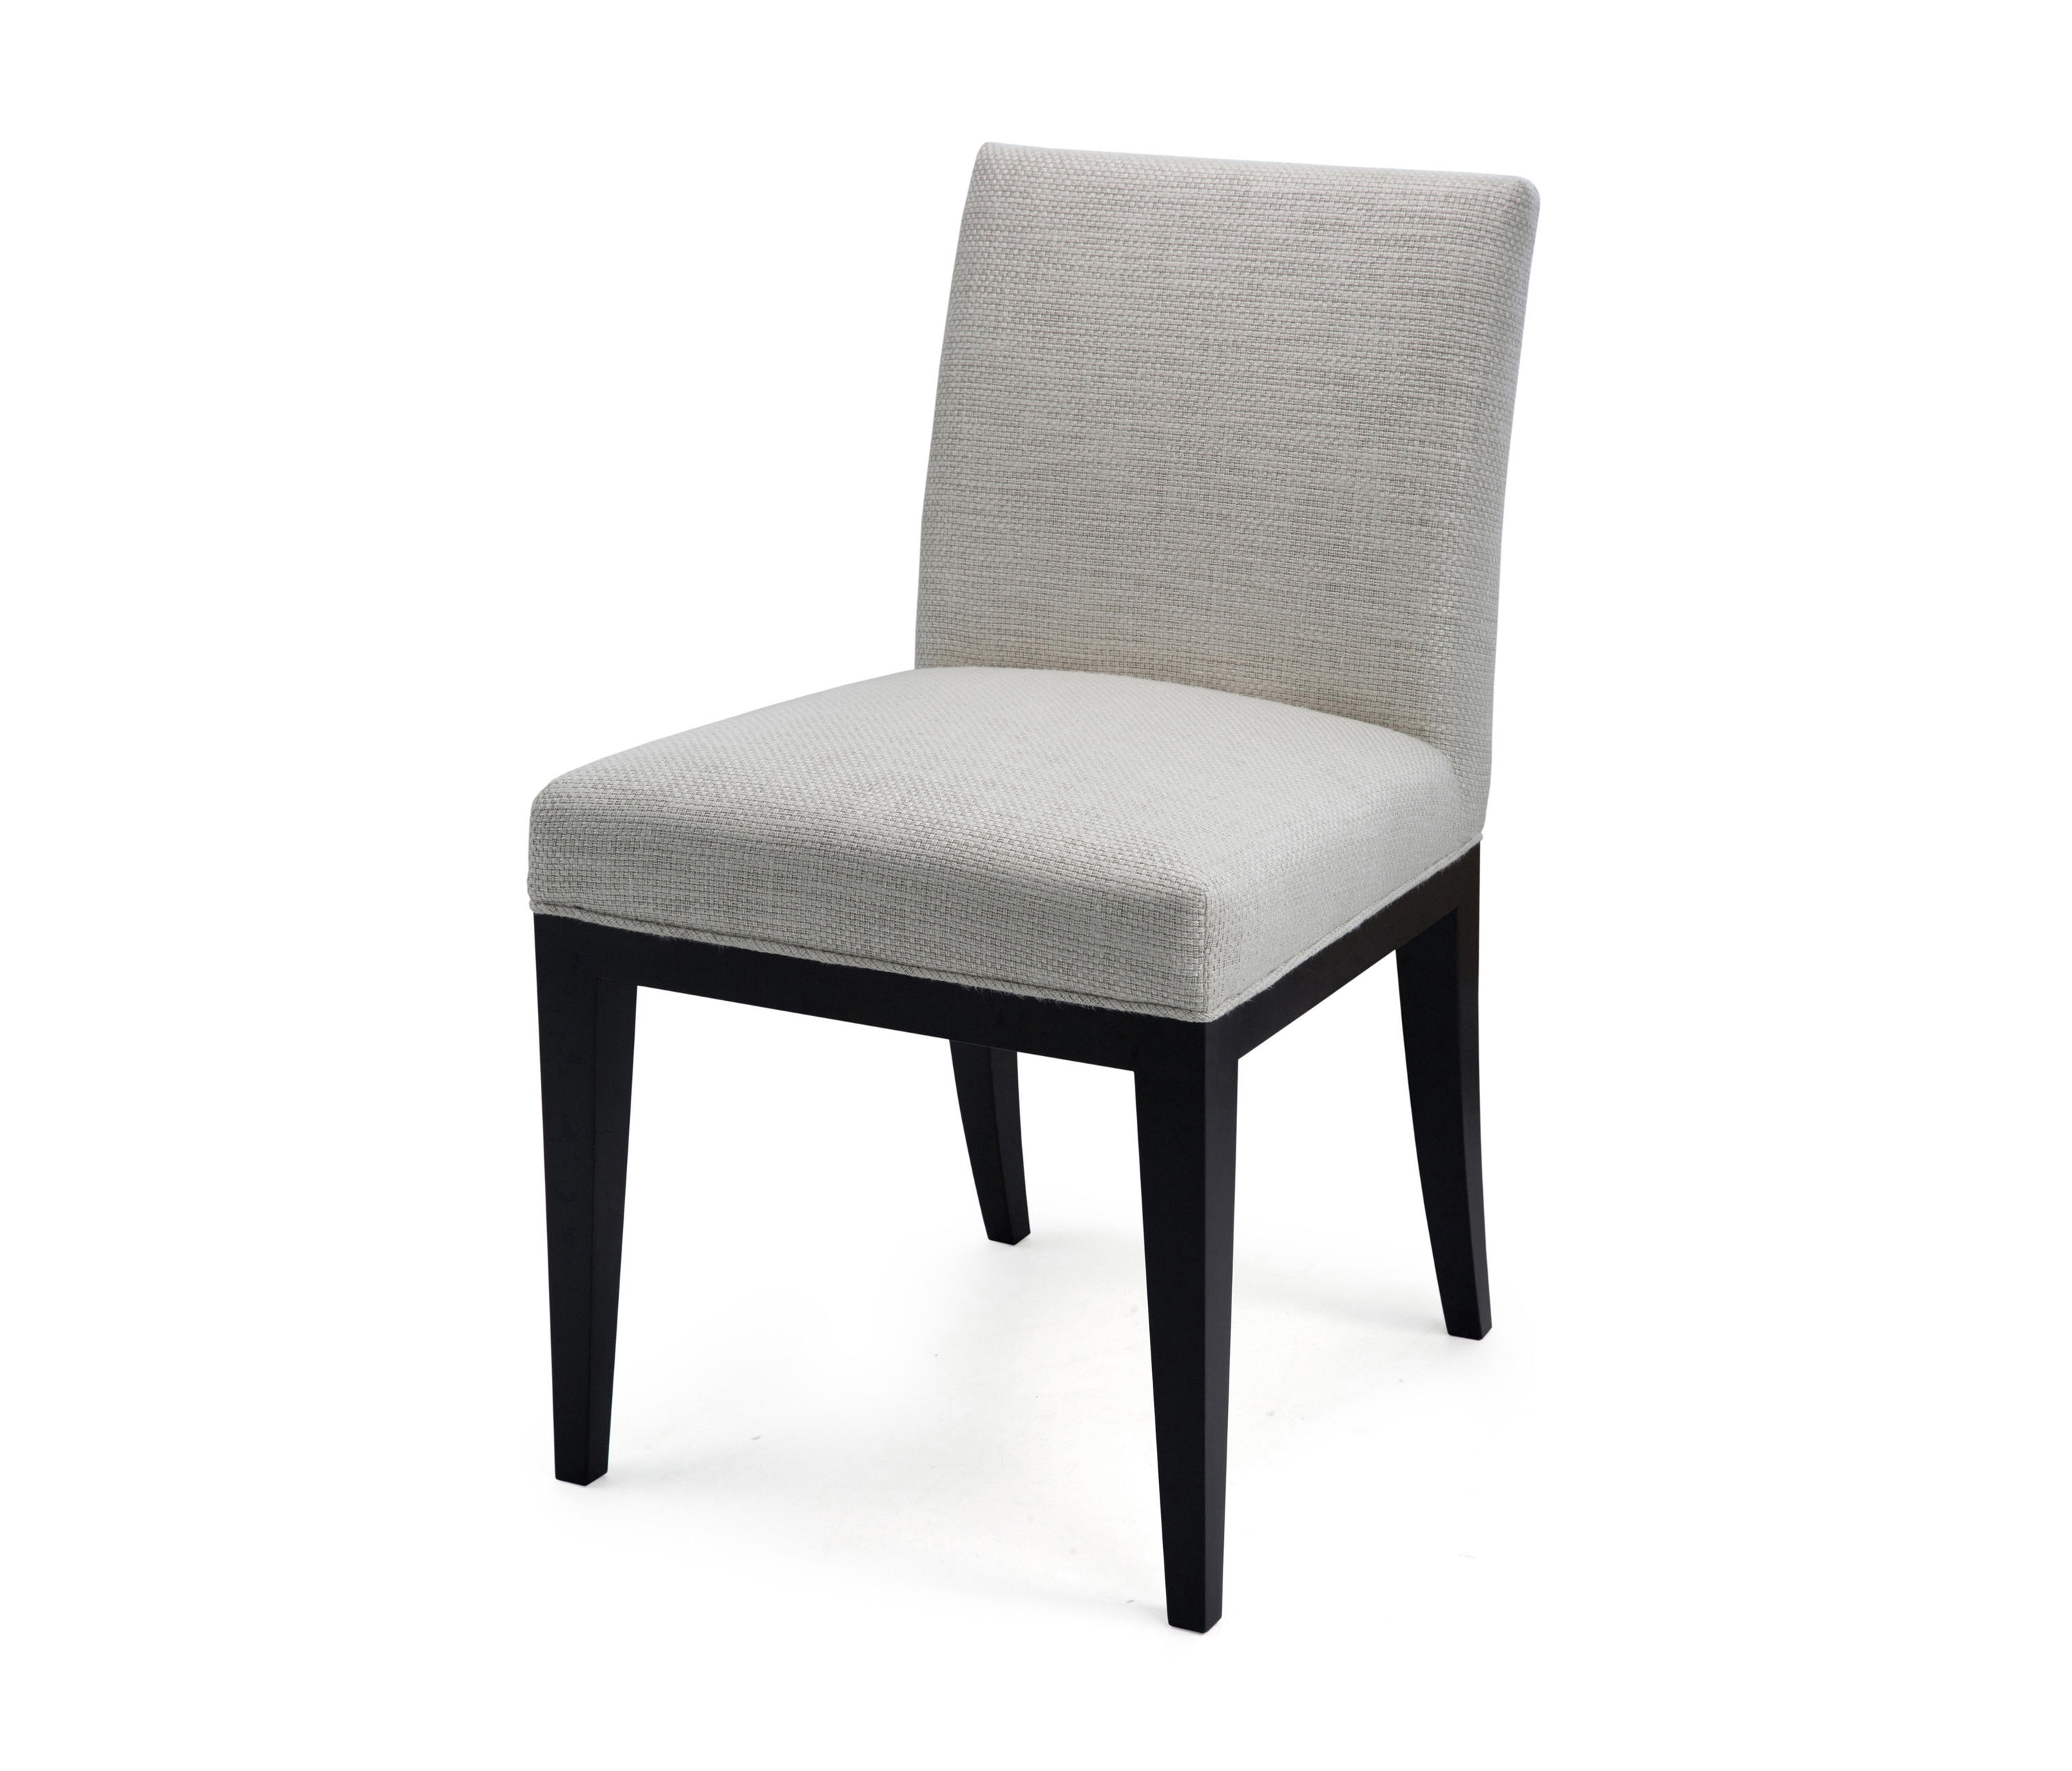 Restaurant Furniture Of Byron Dining Chair Restaurant Chairs From The Sofa